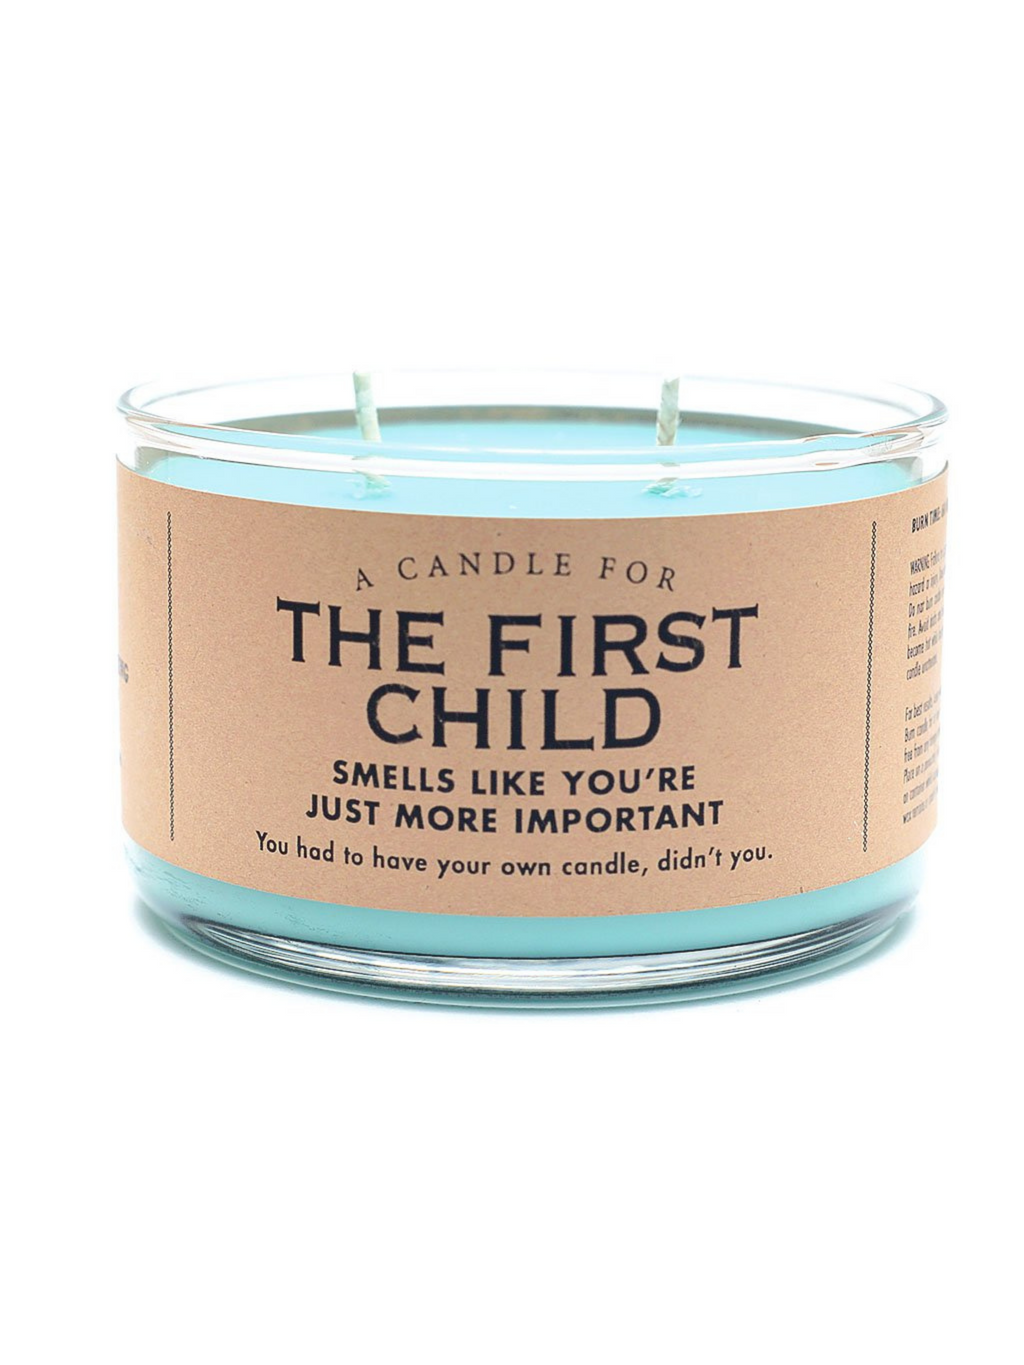 A Candle for The First Child